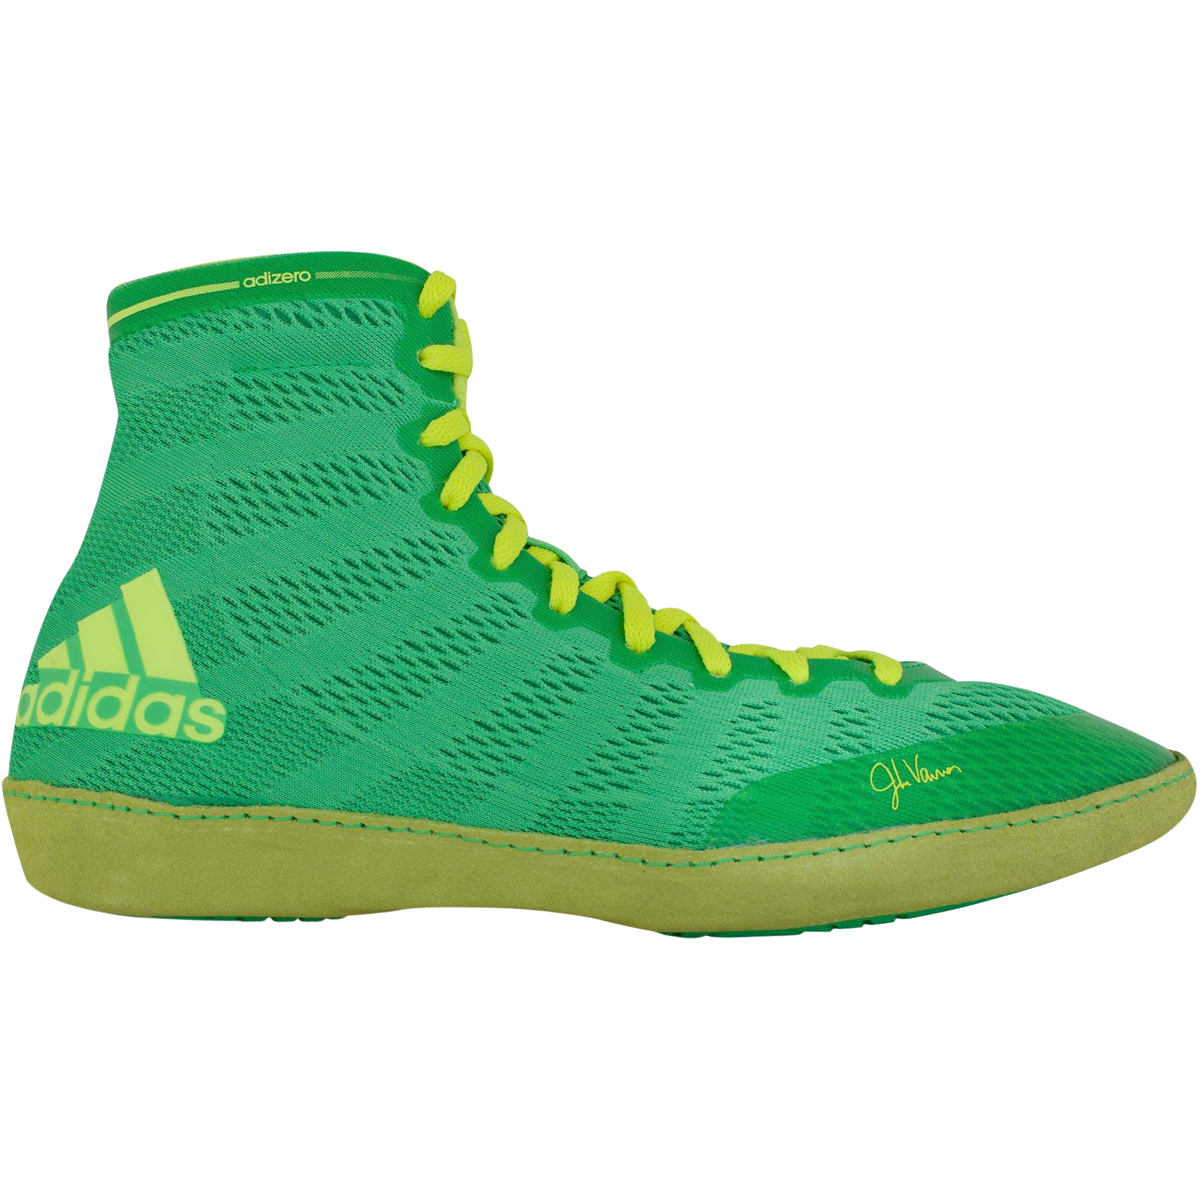 Adidas adizero Varner manzana High Top wrestling zapatos Flash manzana Varner / amarillo 29141f